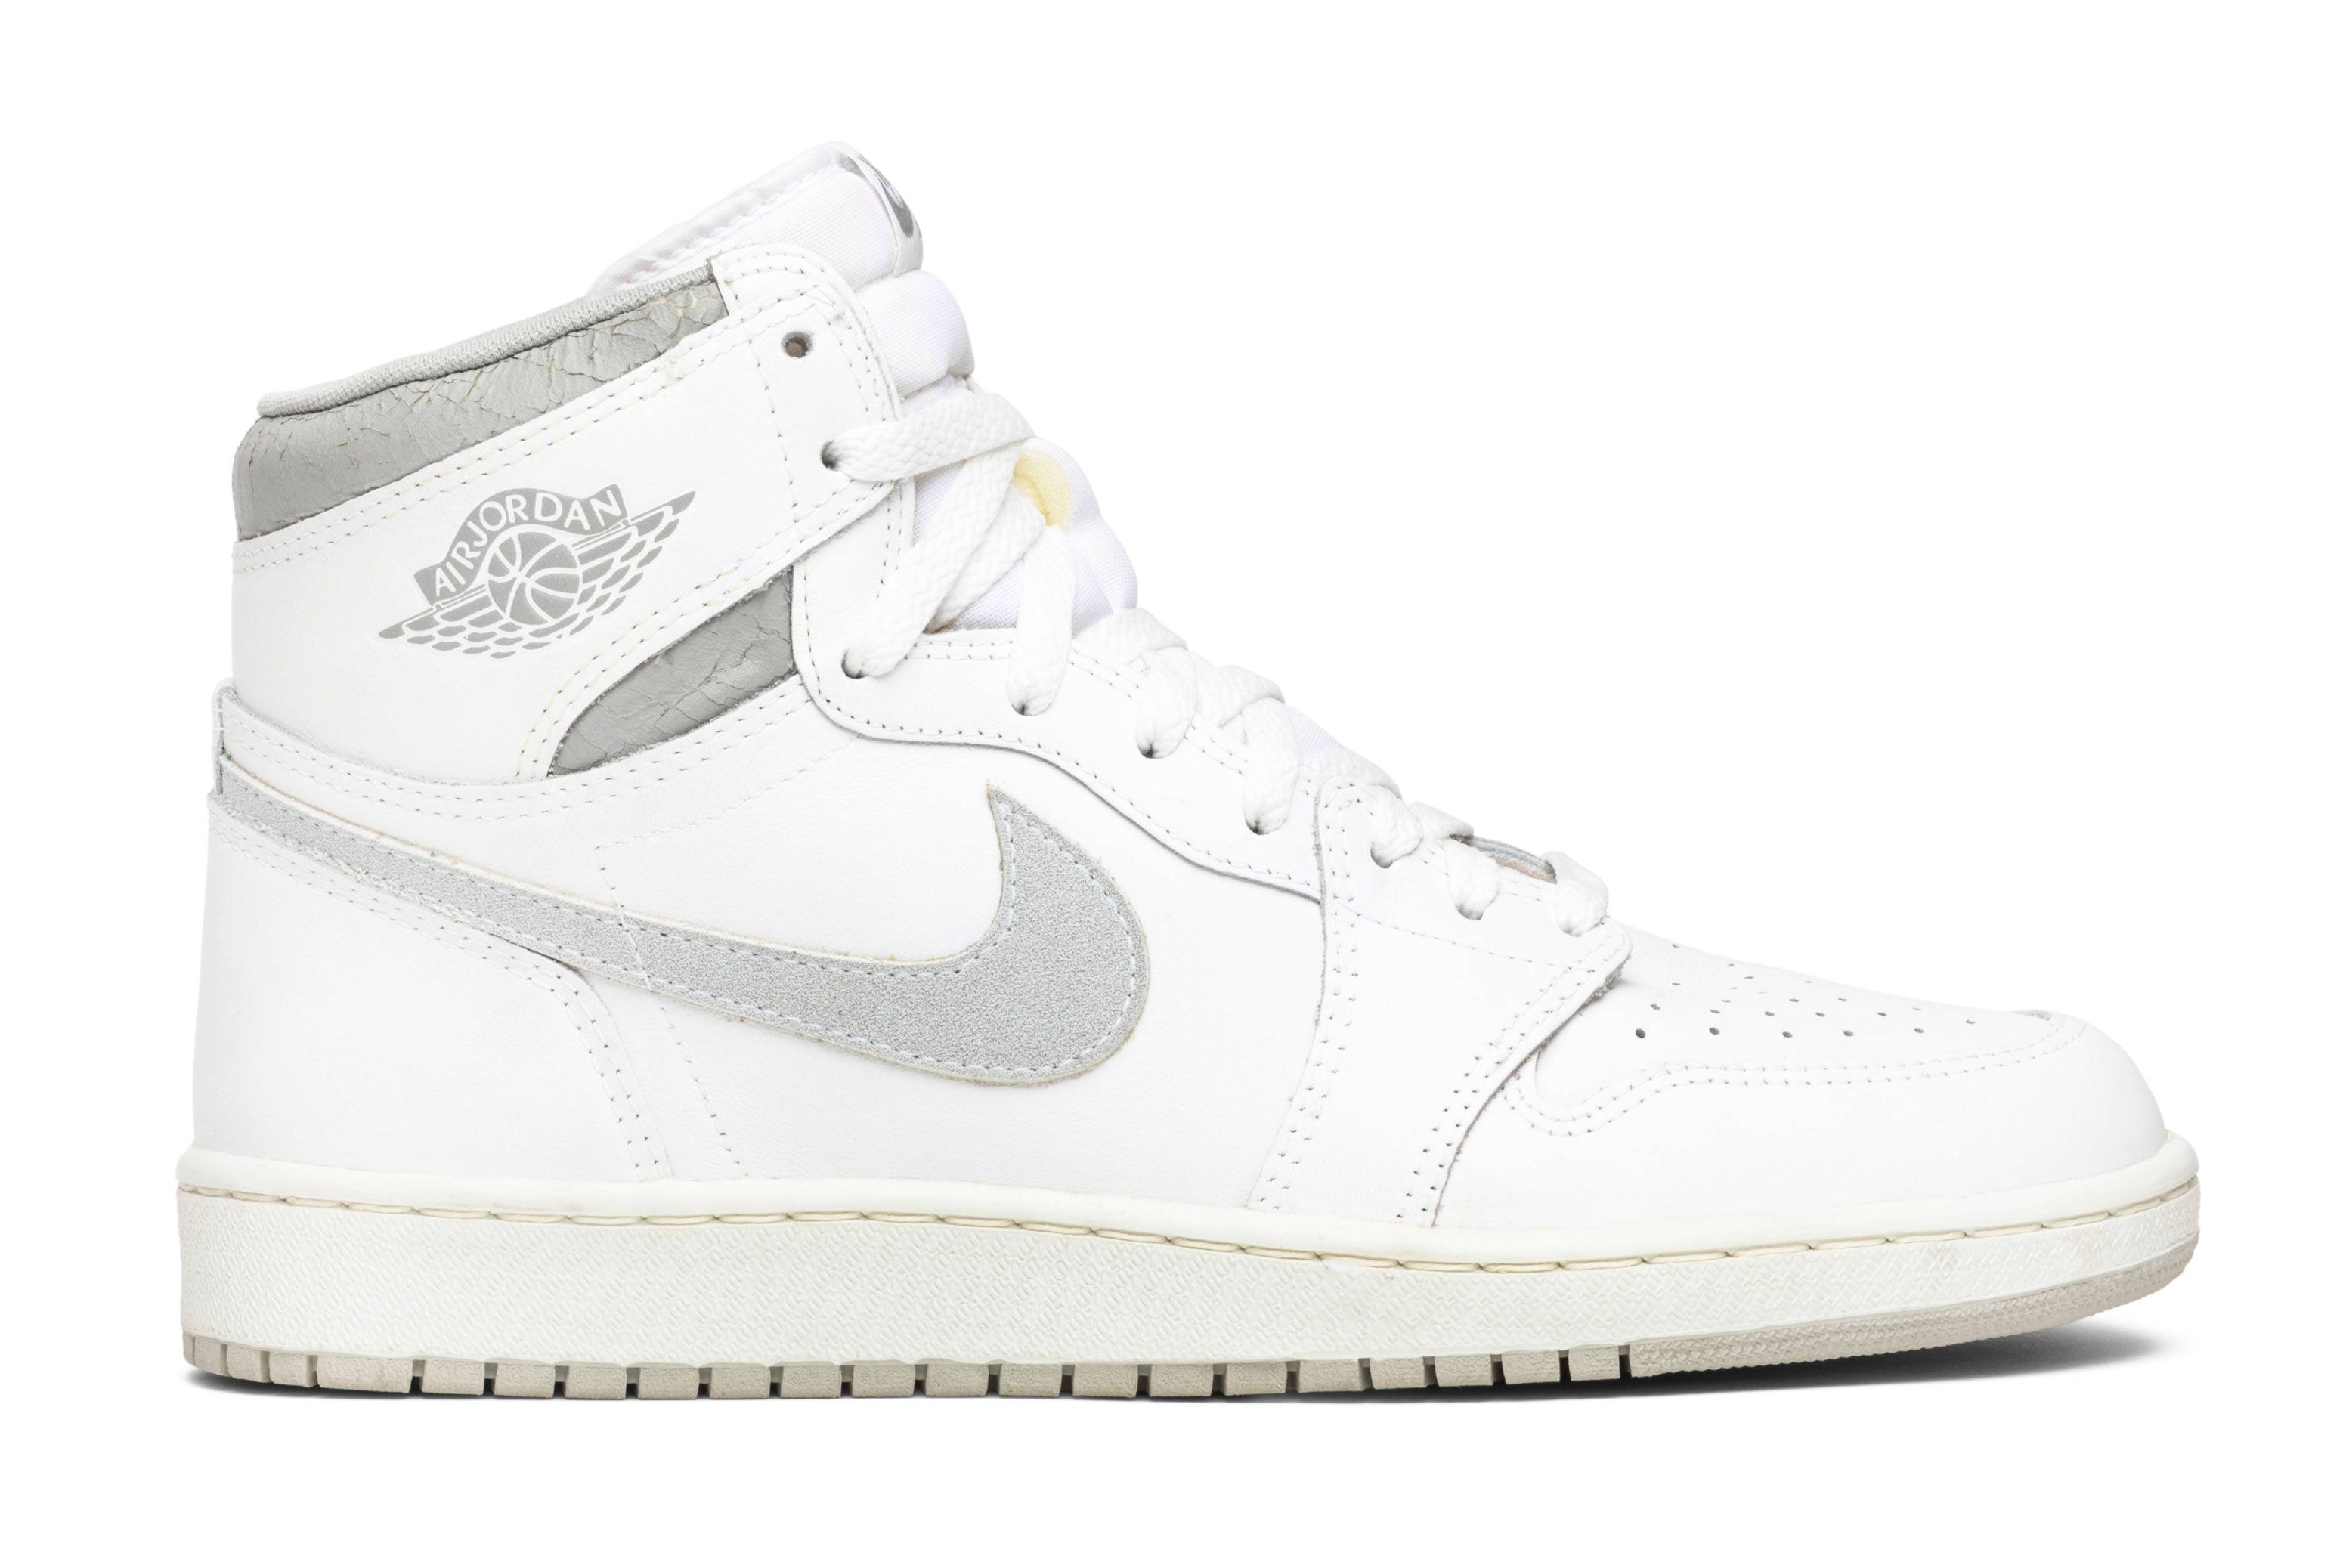 Air Jordan 1 'Natural Grey'